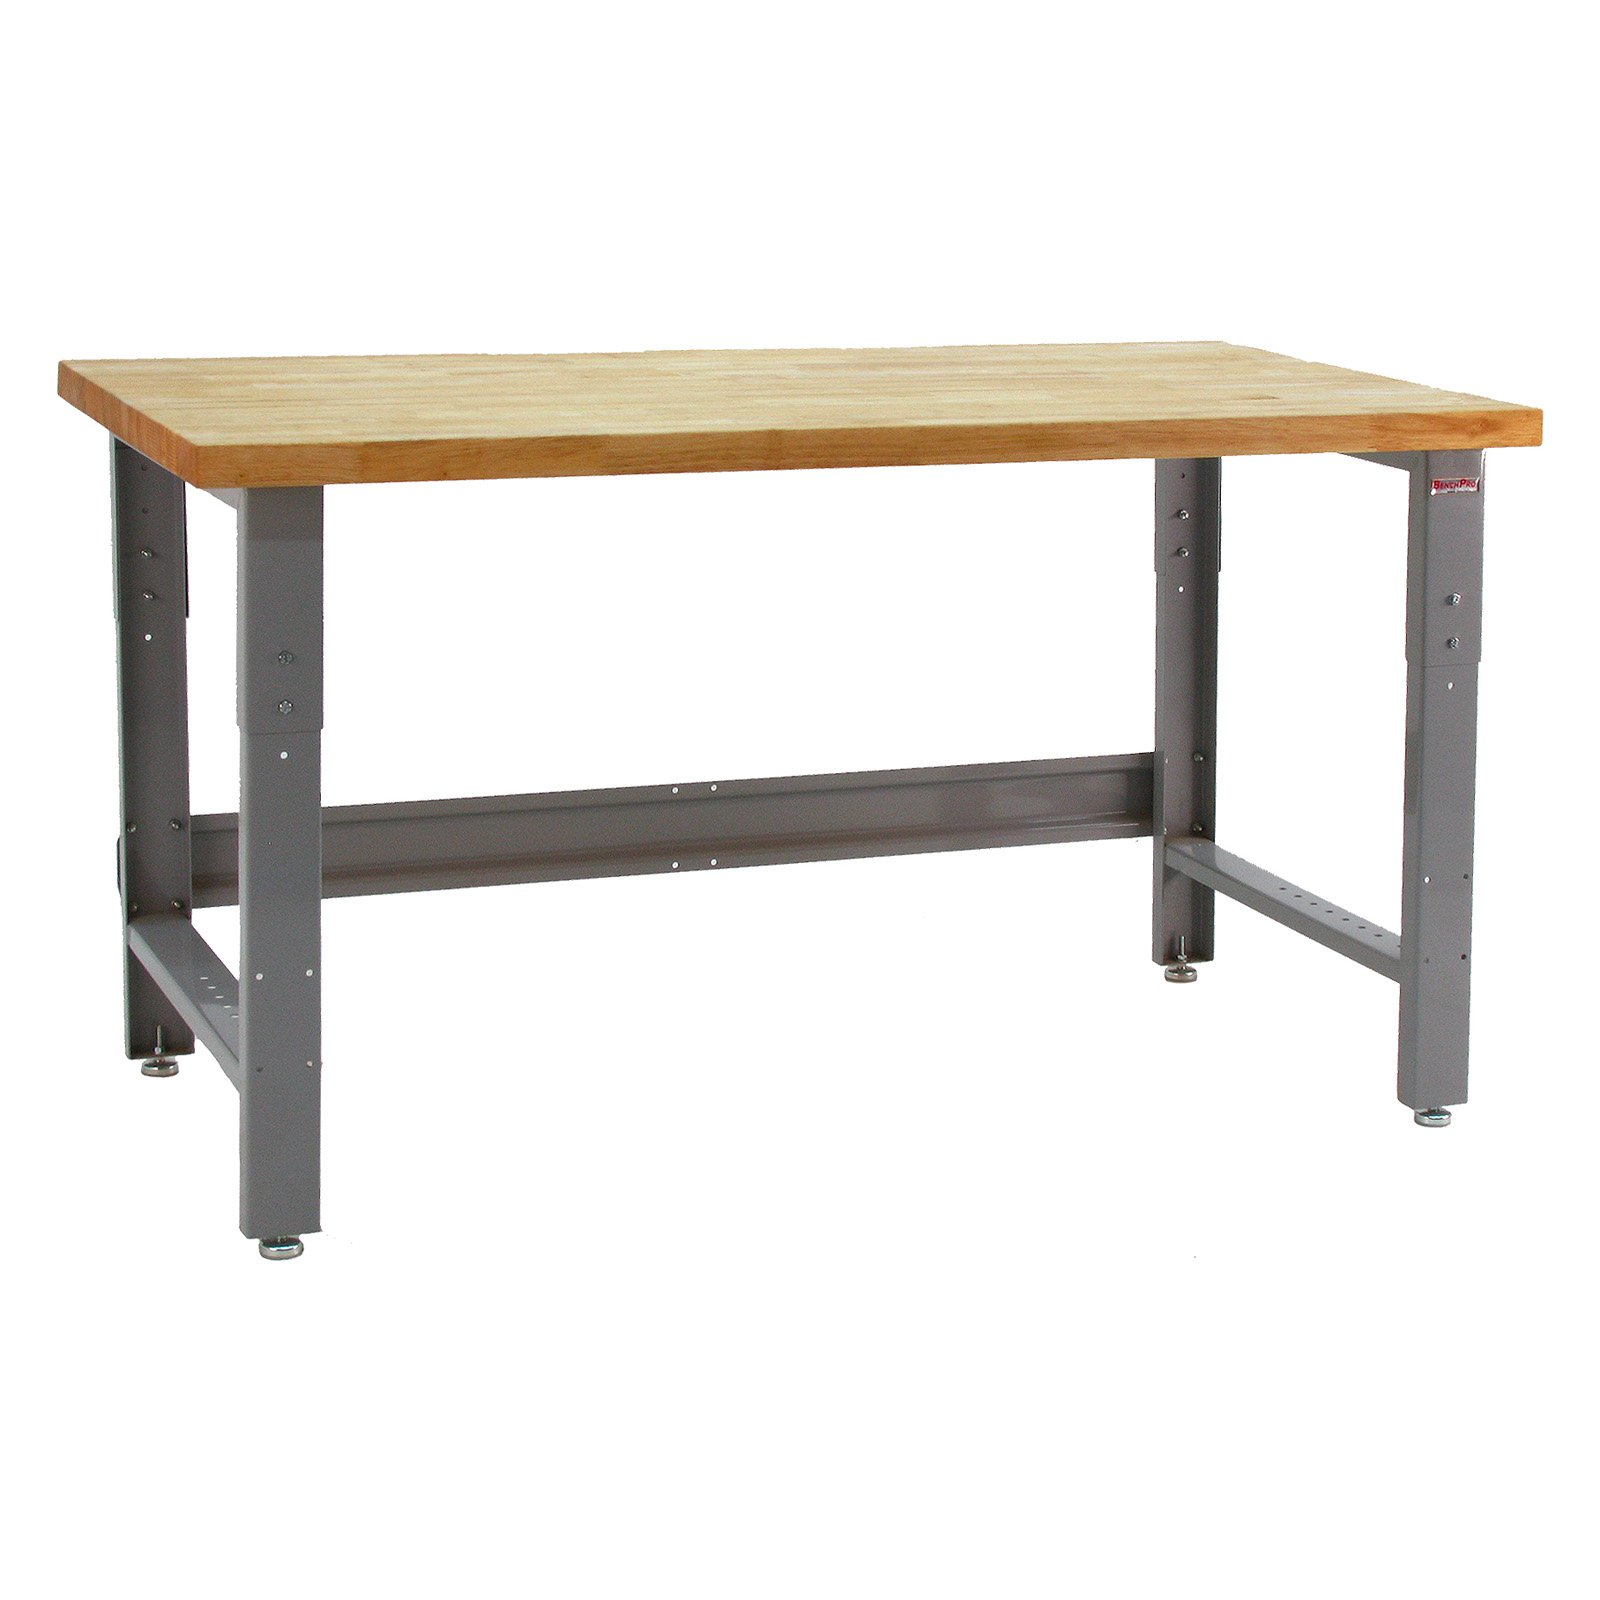 Bench Pro Roosevelt 1600 lb. Workbench with Maple Wood Top by Bench Pro